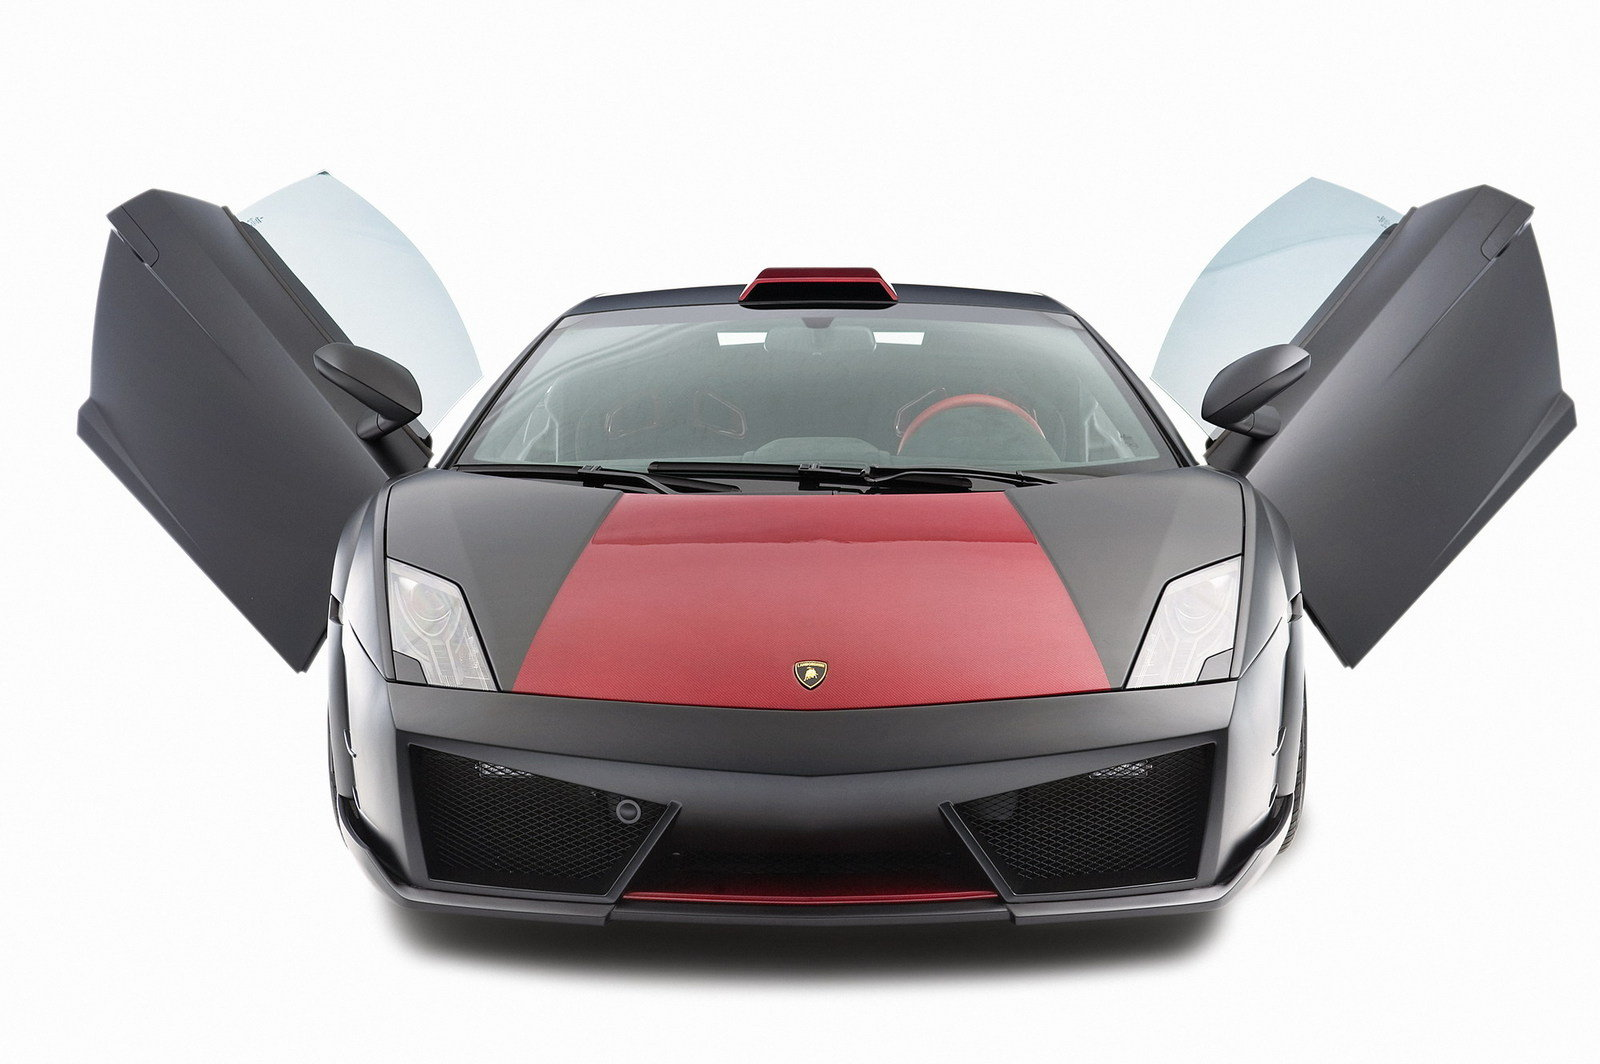 http://pictures.topspeed.com/IMG/crop/201012/hamann-victory-ii-42_1600x0w.jpg